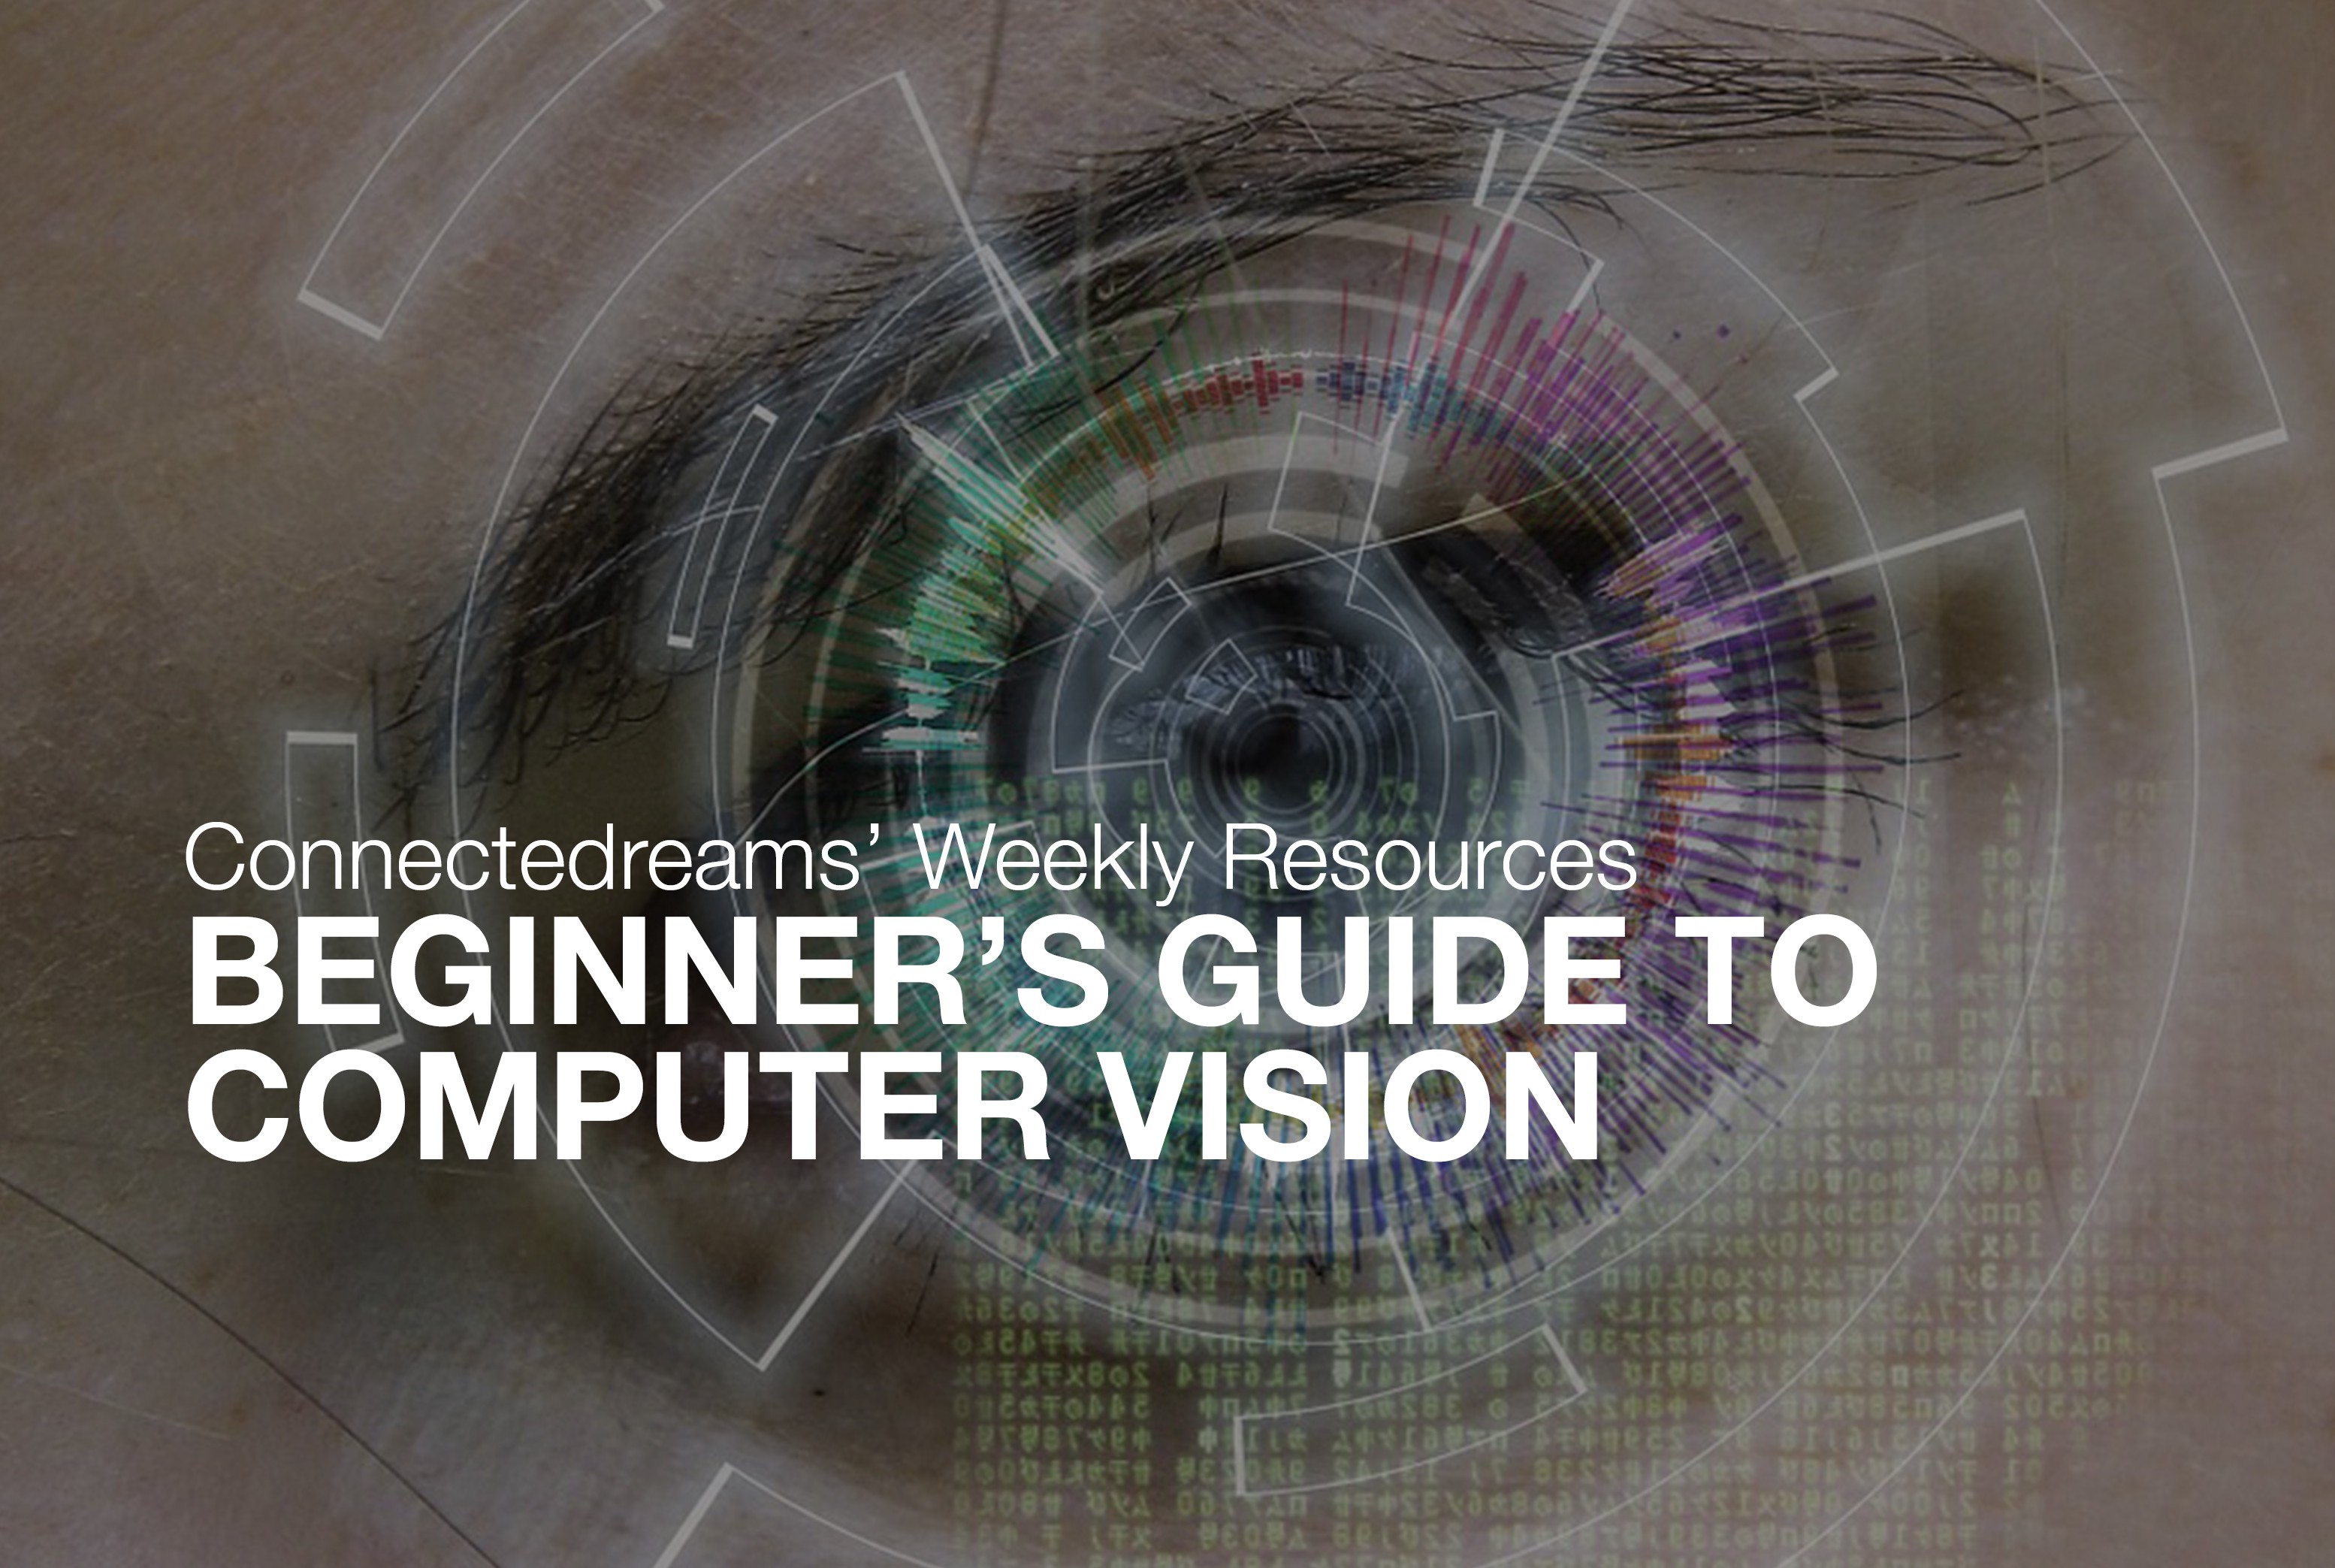 Beginner's Guide to Computer Vision - Connectedreams Blog - Medium